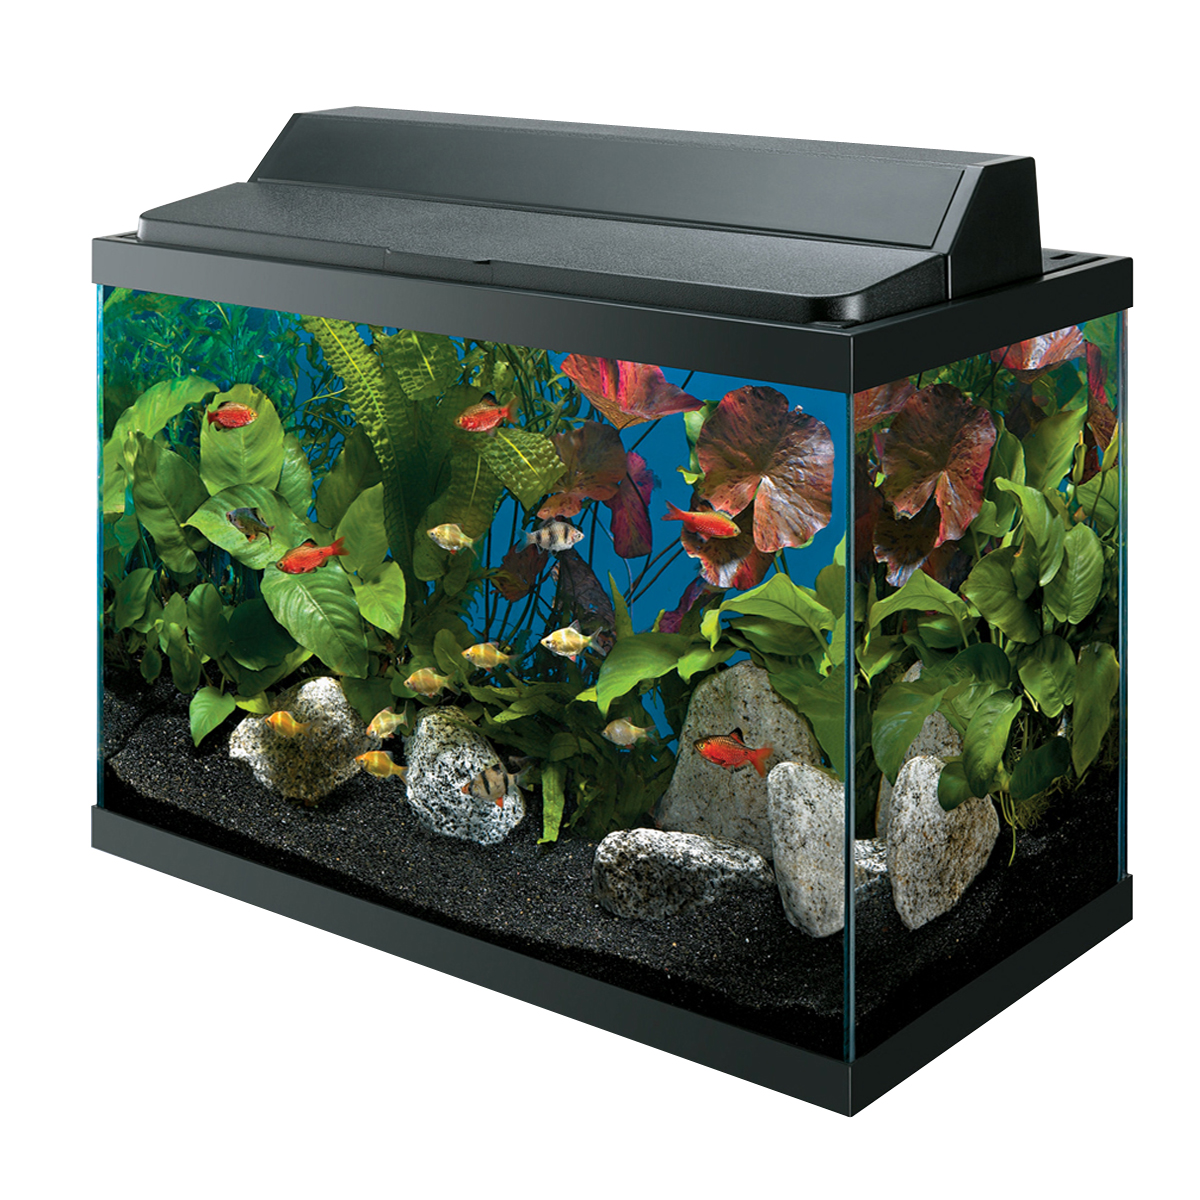 Aqueon-Deluxe-Aquarium-Kit.jpg